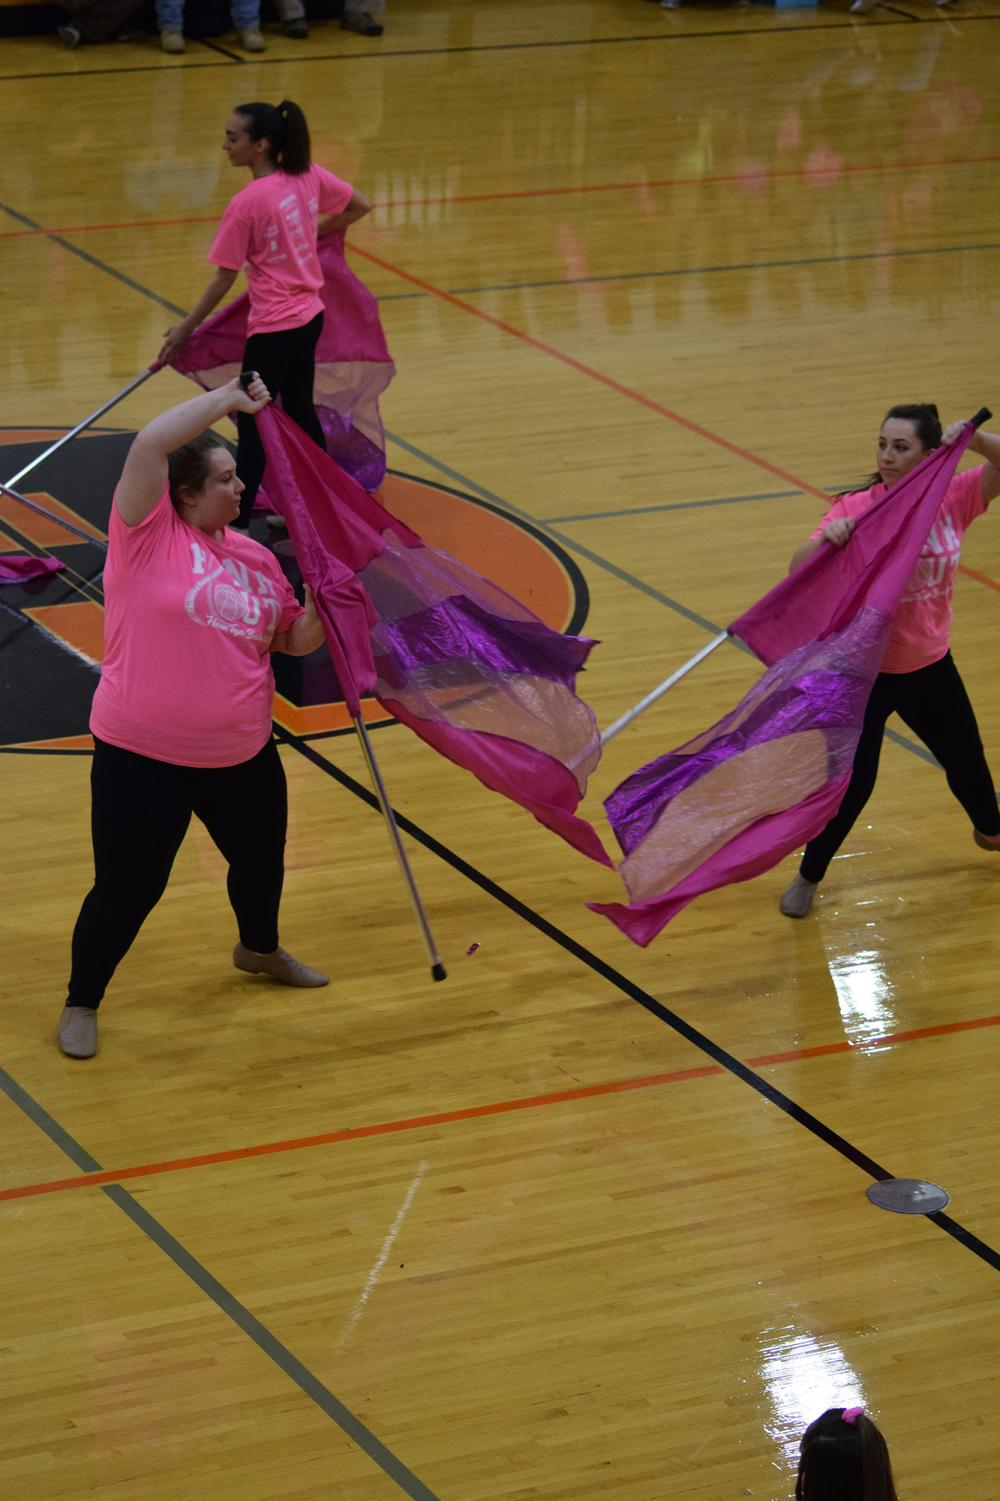 Allison+Berry+%2811%29+and+Cecily+Smith+%2811%29+switch+flags%2C+performing+a+spectacular+move+during+the+pep+rally.+